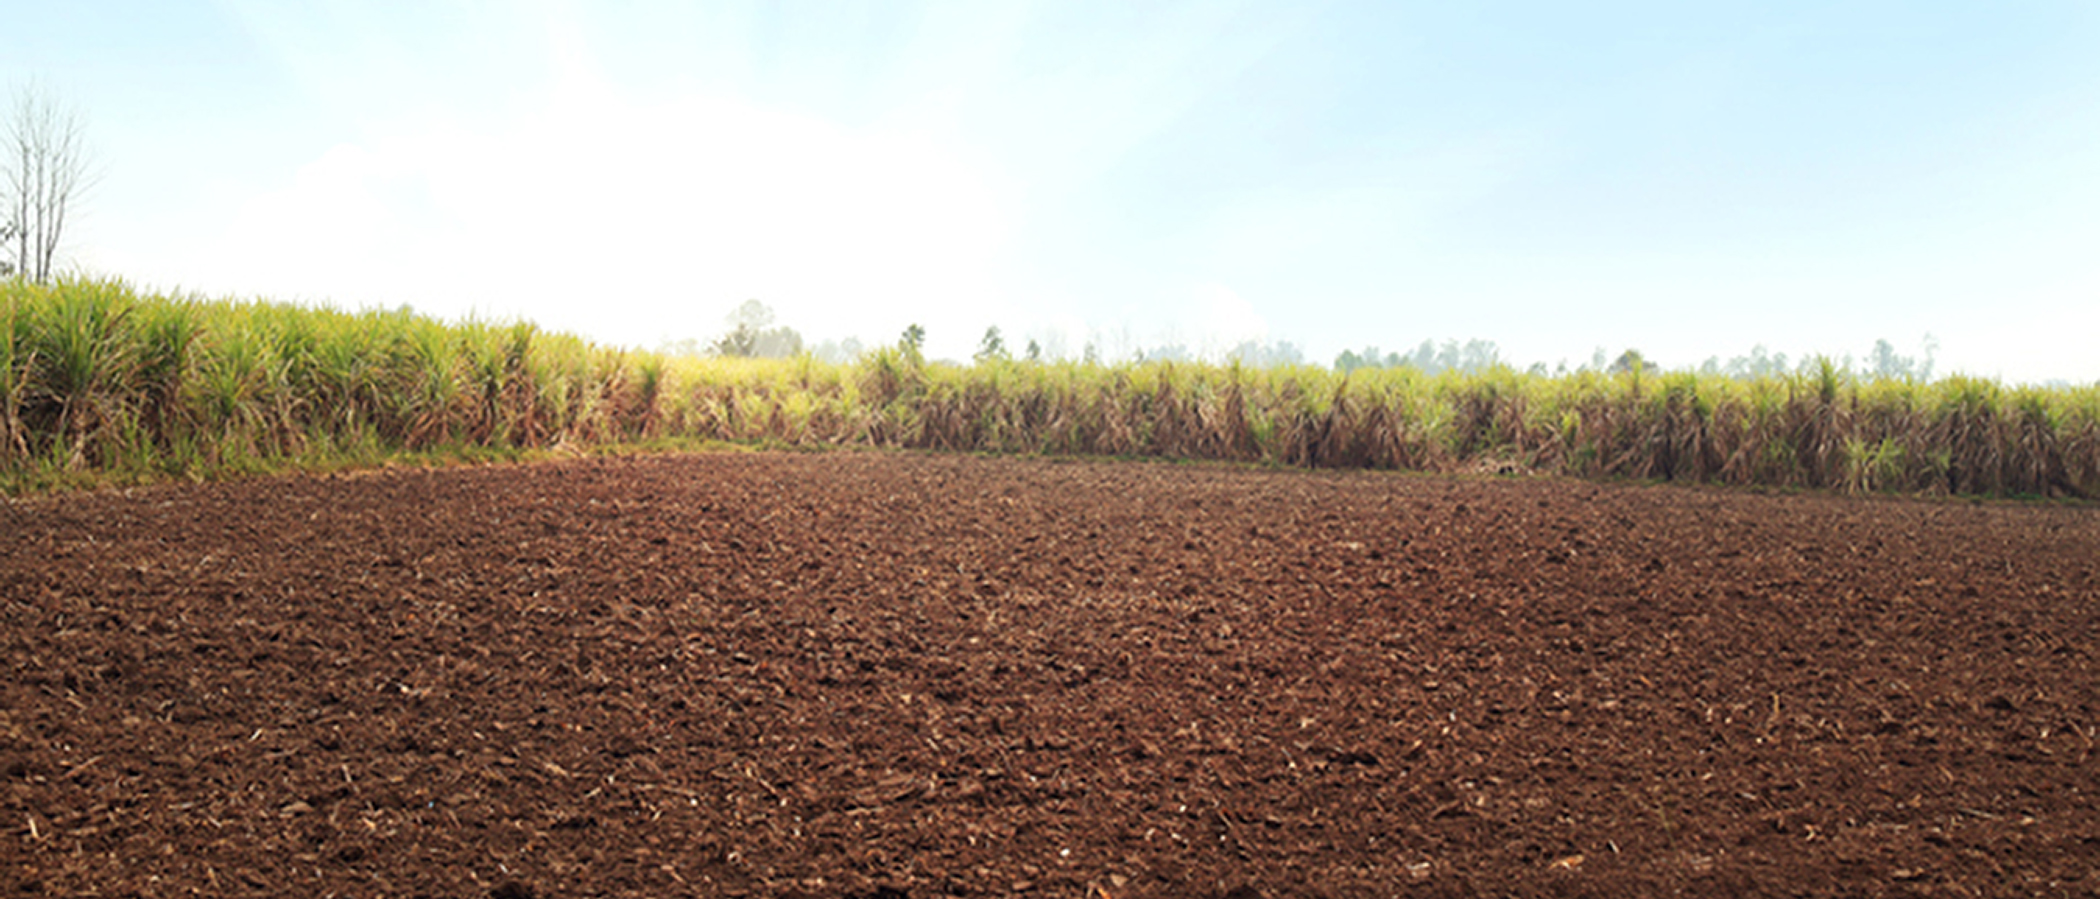 Ground of mulch